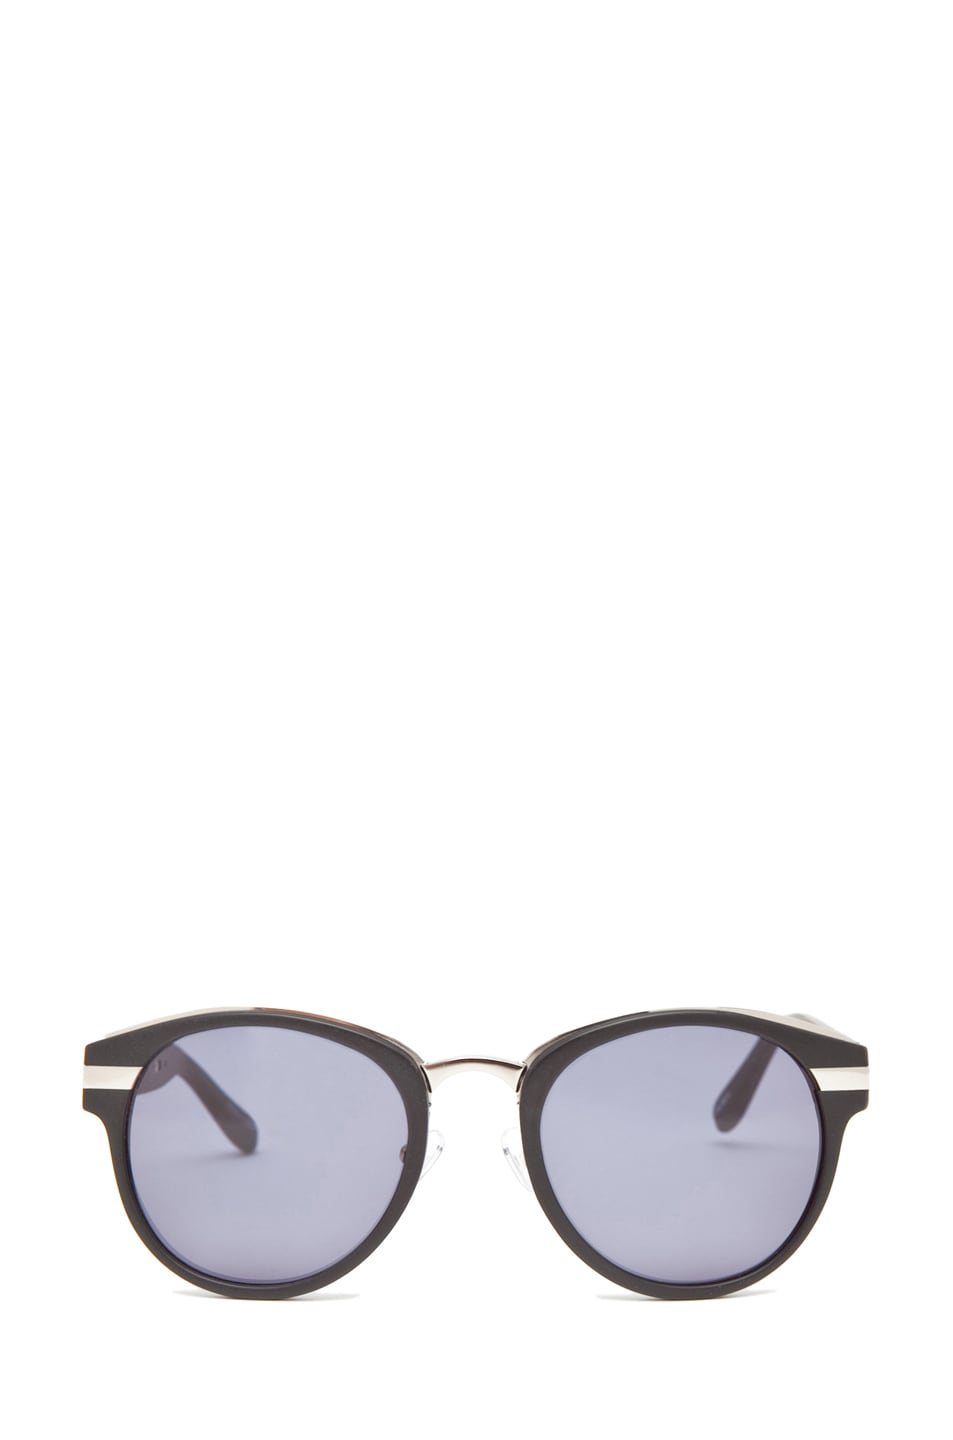 Image 1 of Alexander Wang Sunglasses in Matte Black